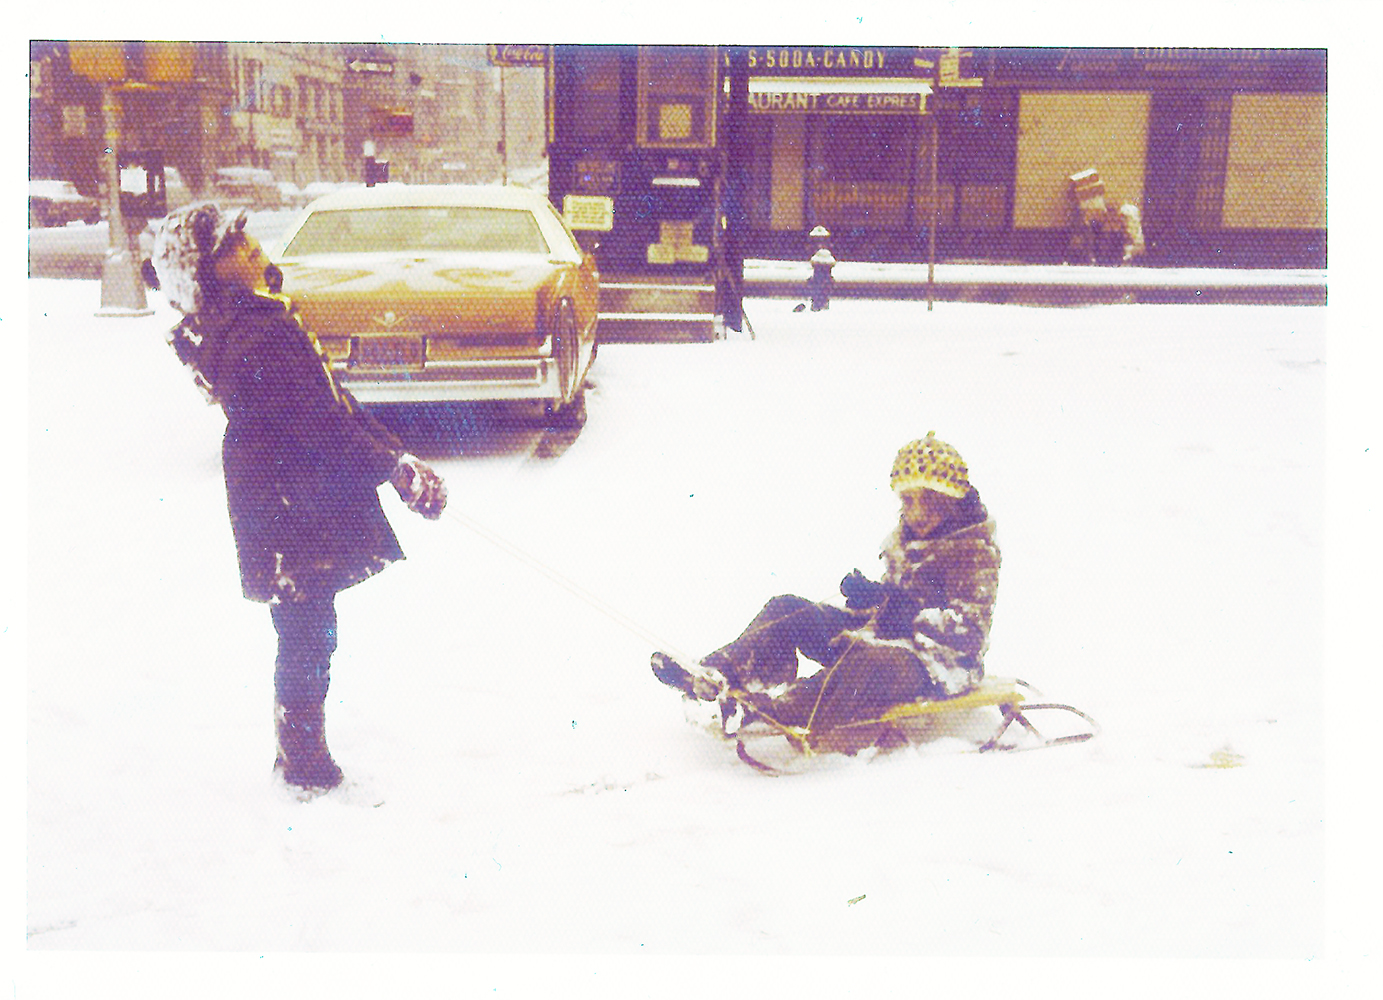 Sledding in the parking lot, ca 1975